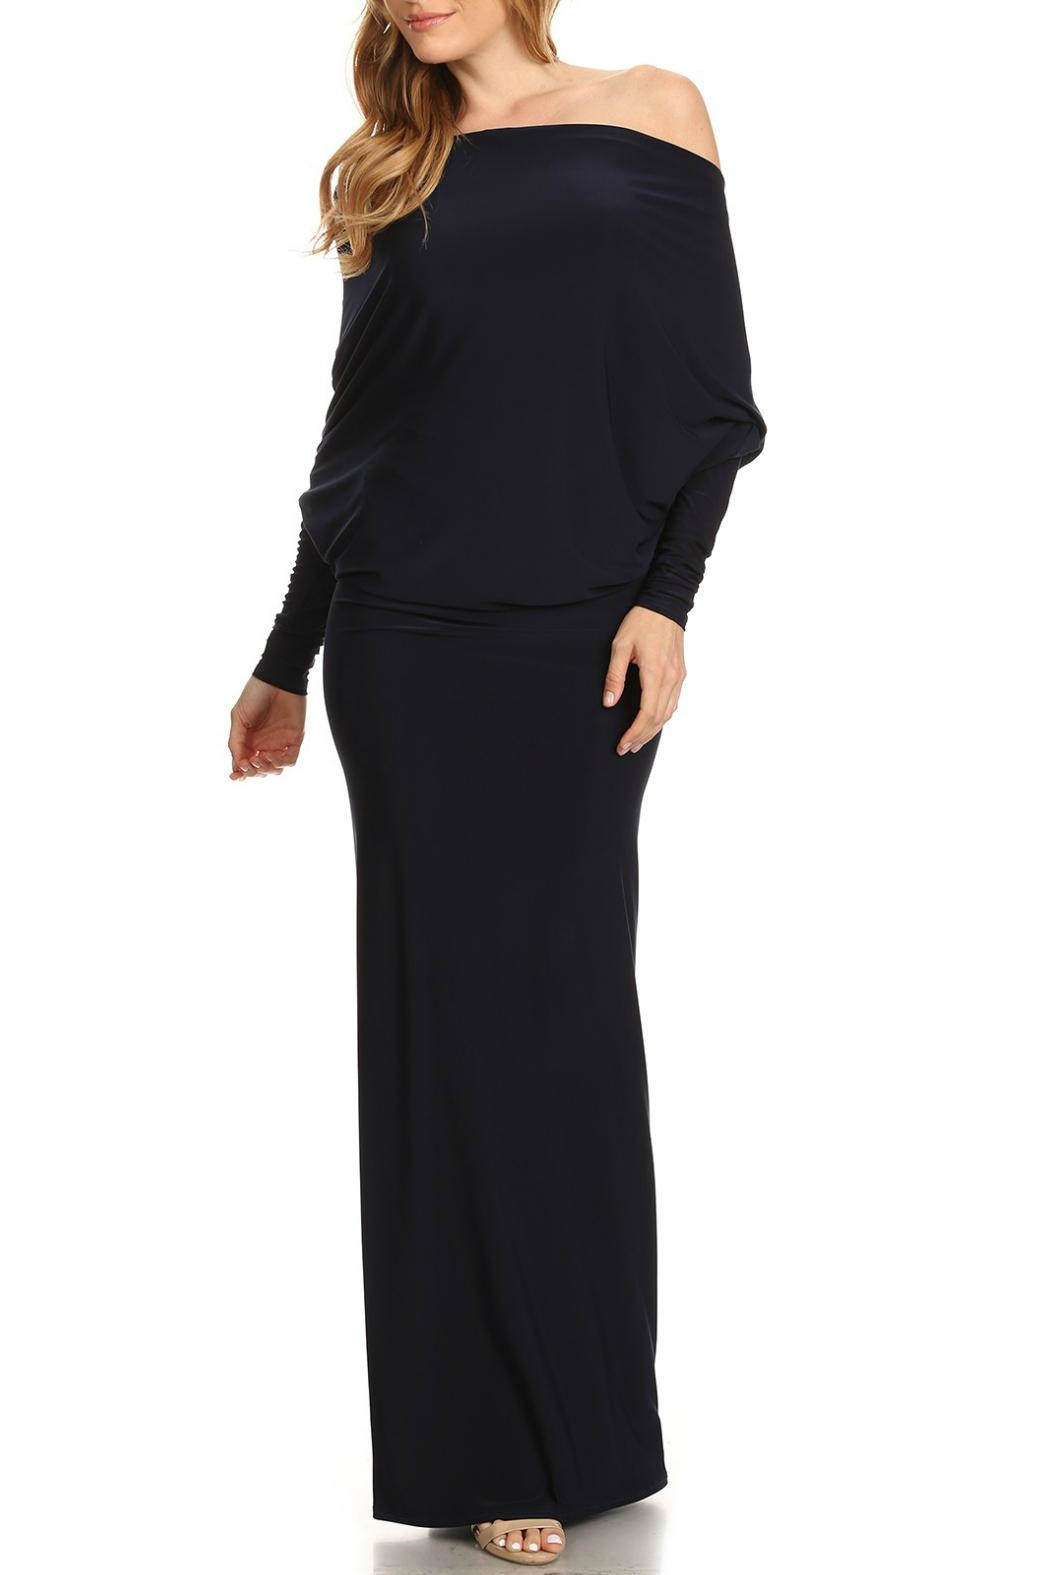 Karen T Designs Low Back Maxi - Front Cropped Image